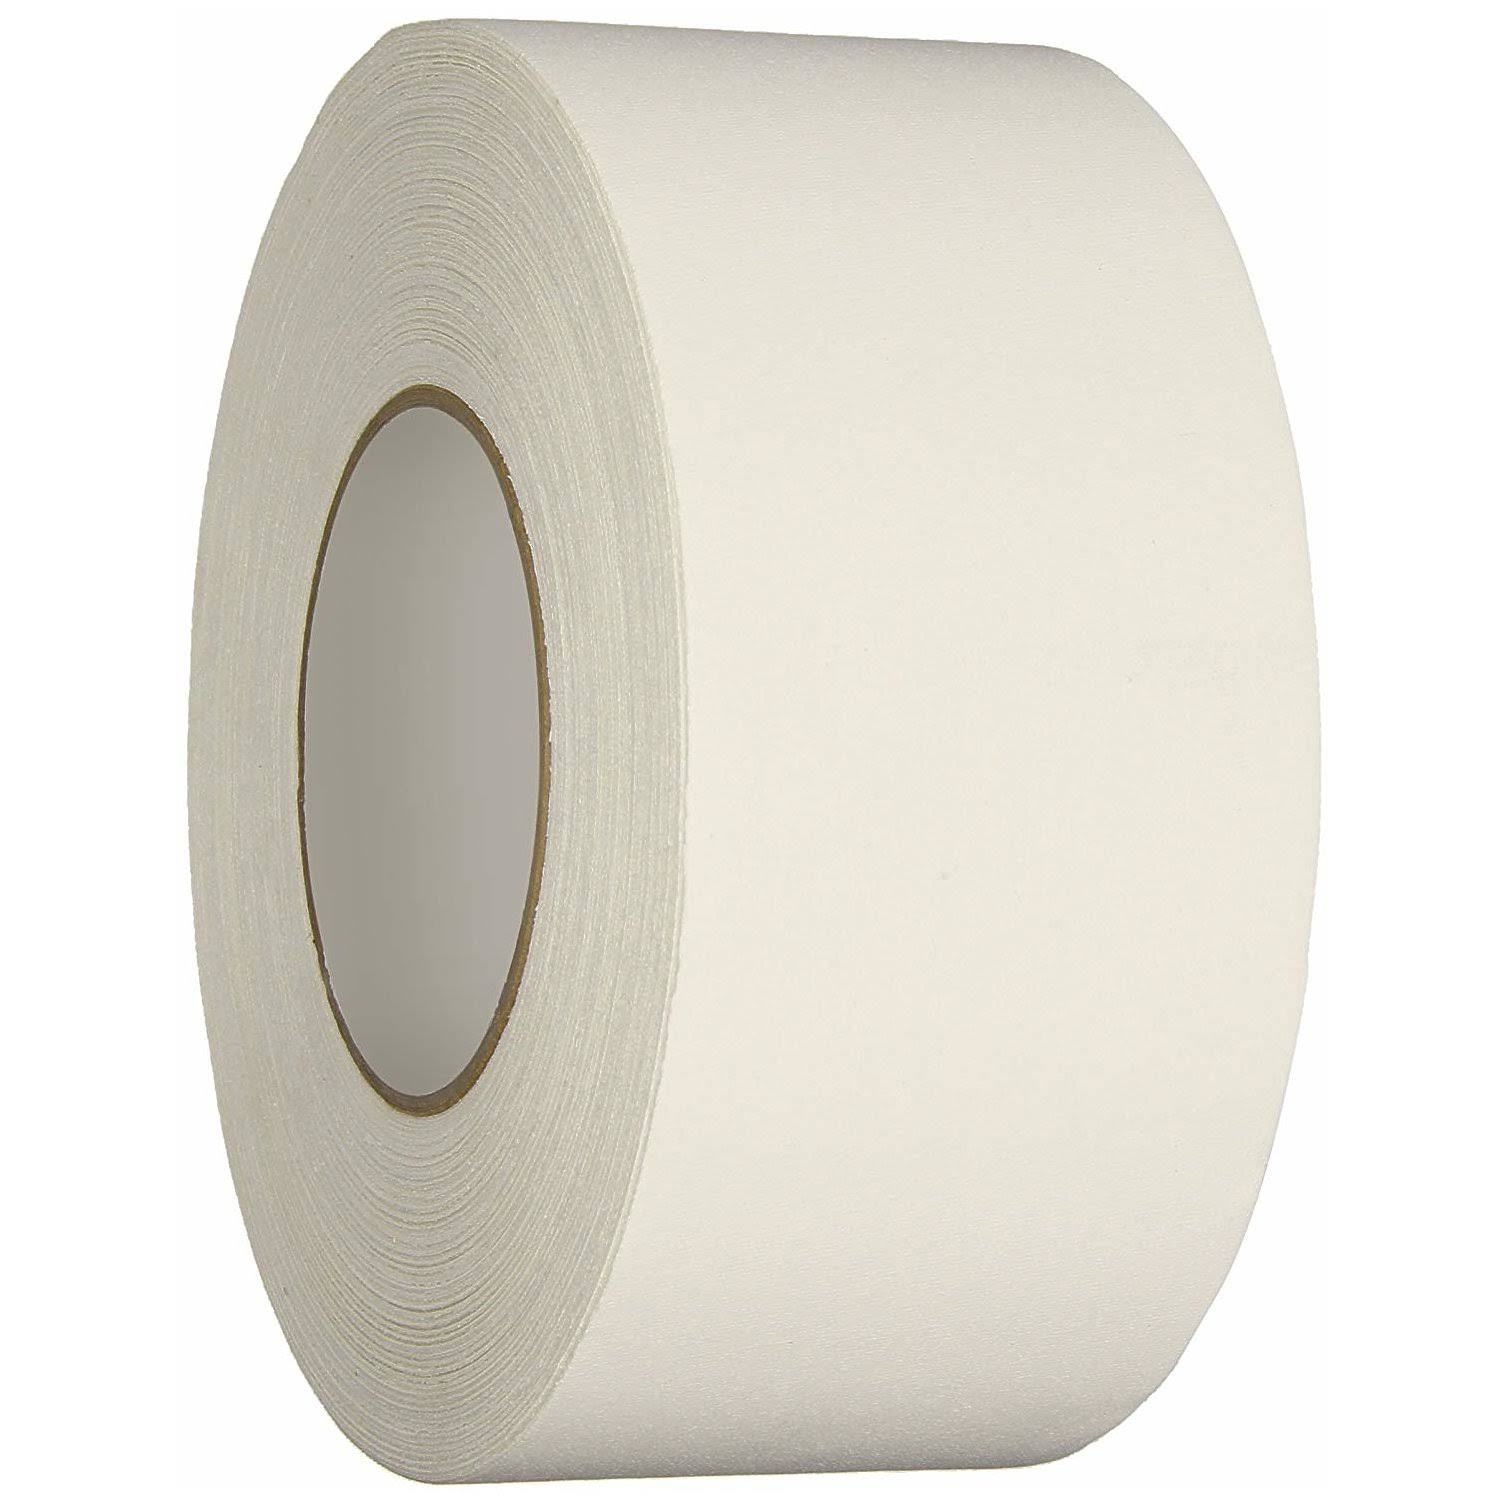 Polyken 510 Gaffers Tape - White, 60yds